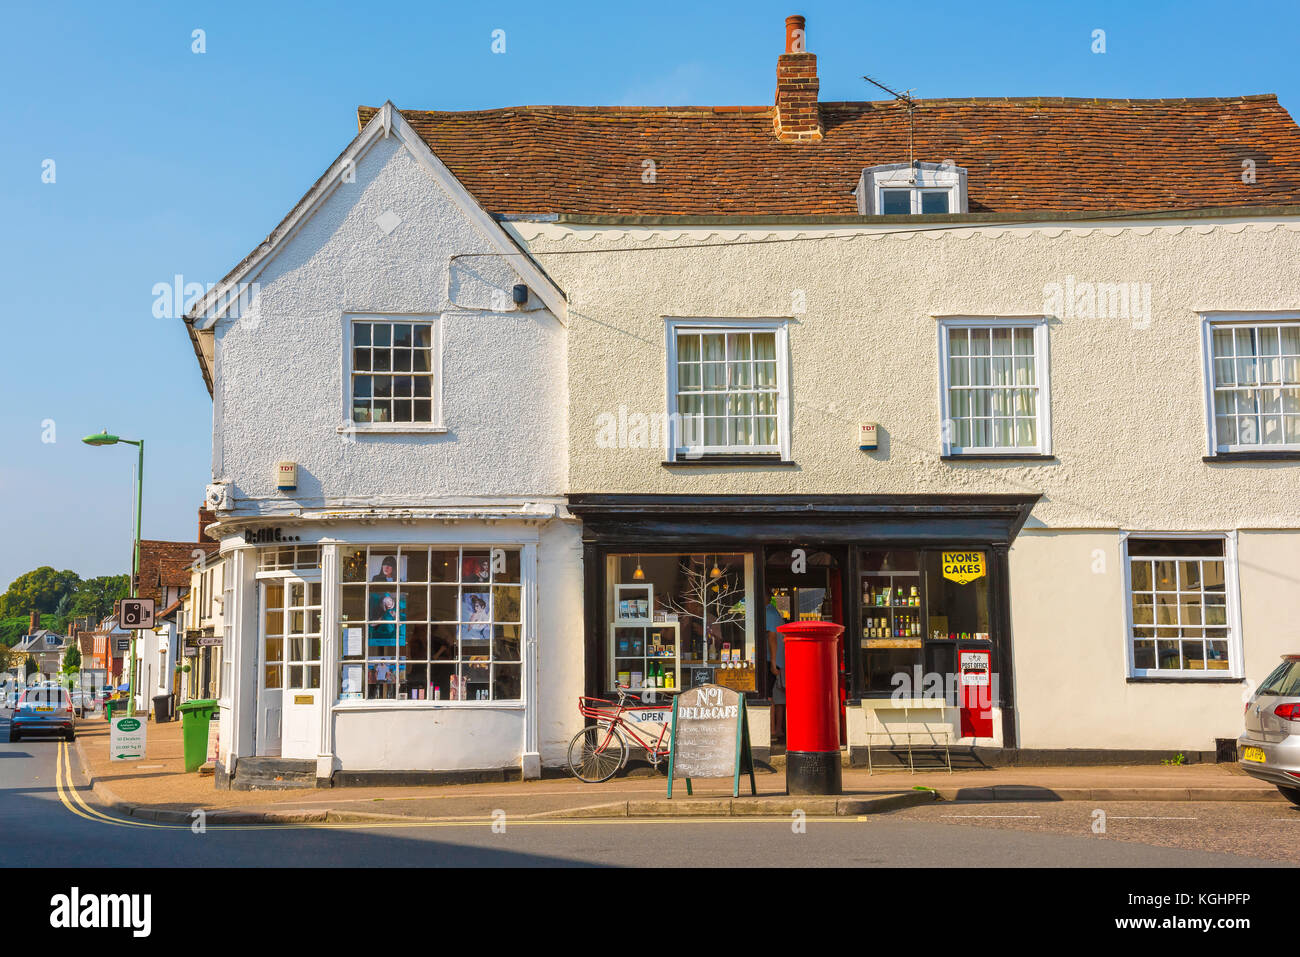 Village shop UK, traditional village shops along the High Street in the historic Suffolk village of Clare, UK Stock Photo